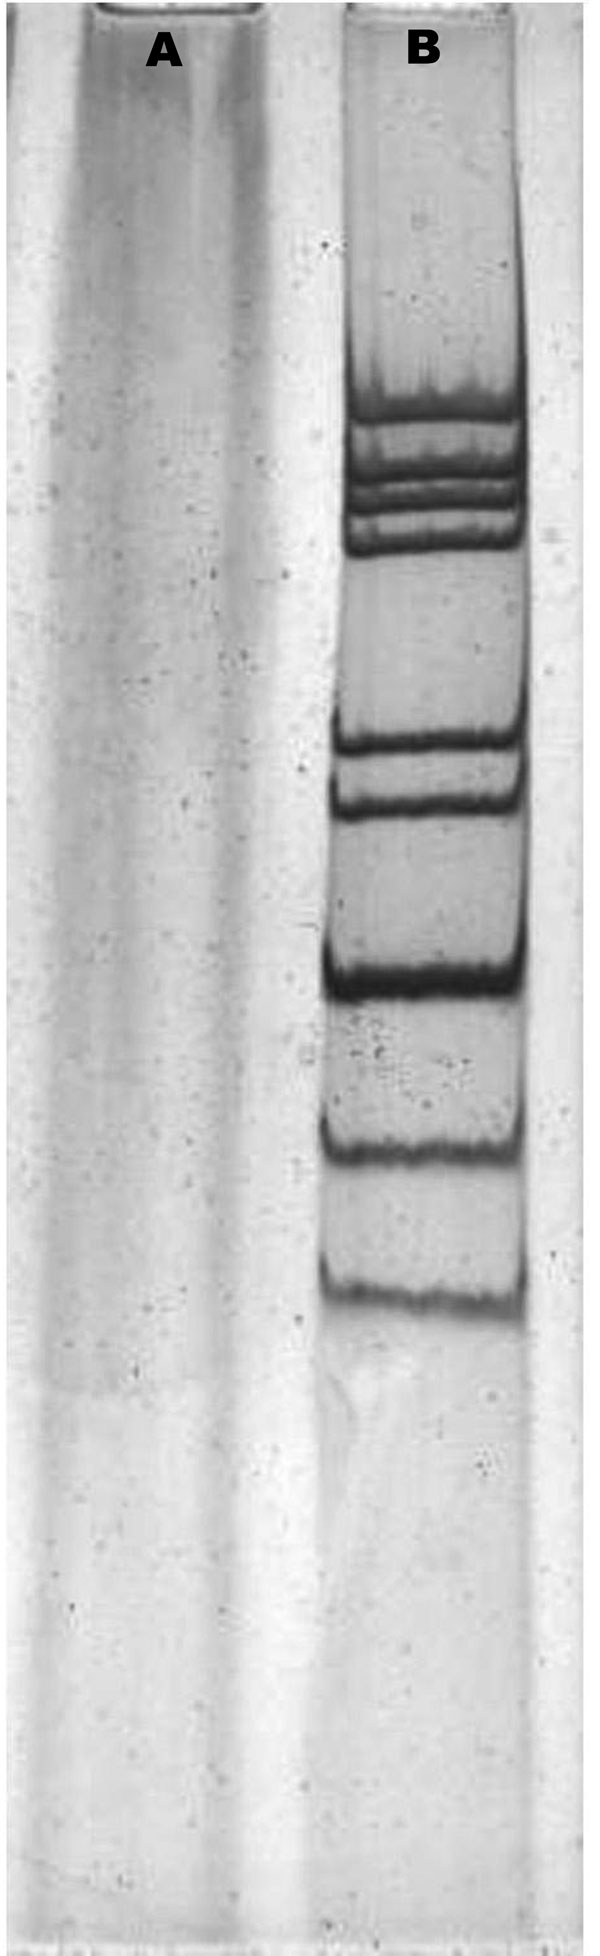 Polyacrylamide gel electrophoresis of rotavirus RNA. The viral RNAs were analyzed by electrophoresis in a polyacrylamide gel and visualized by silver staining. A, negative control; B, Wuhan G9 strain (CC589).